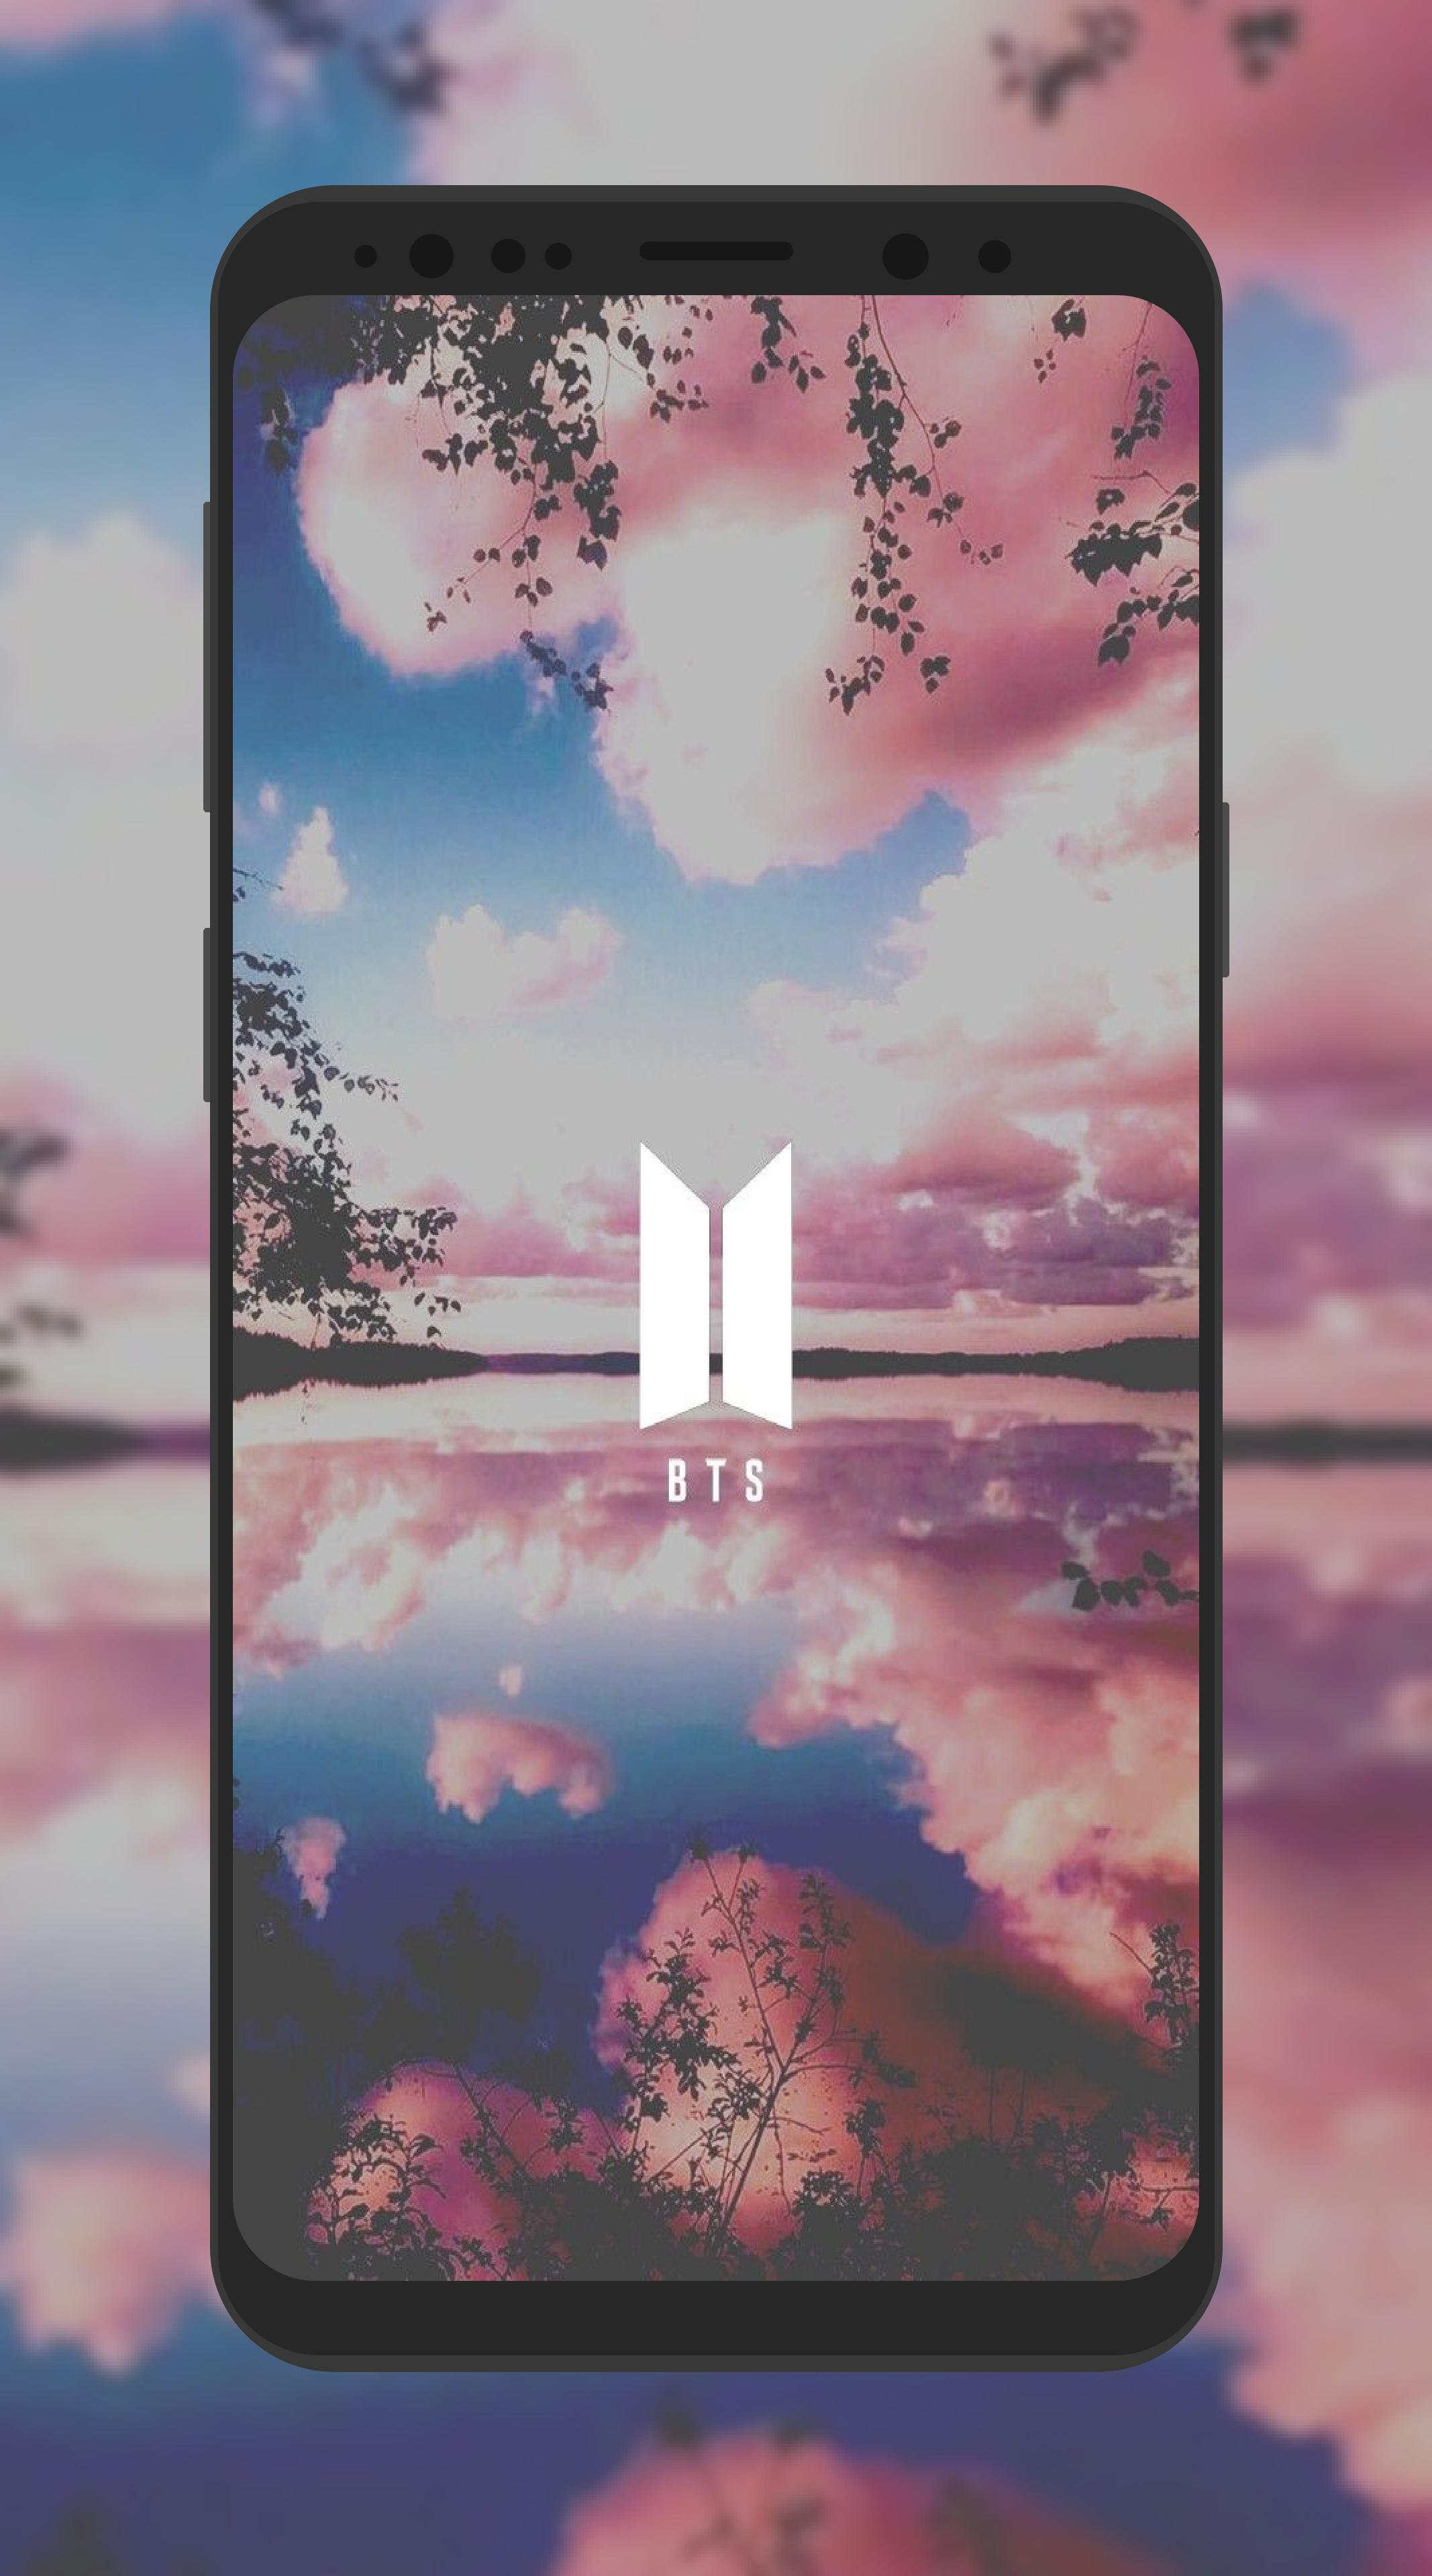 BTS Wallpapers 2020 for Android   APK Download 2134x3840